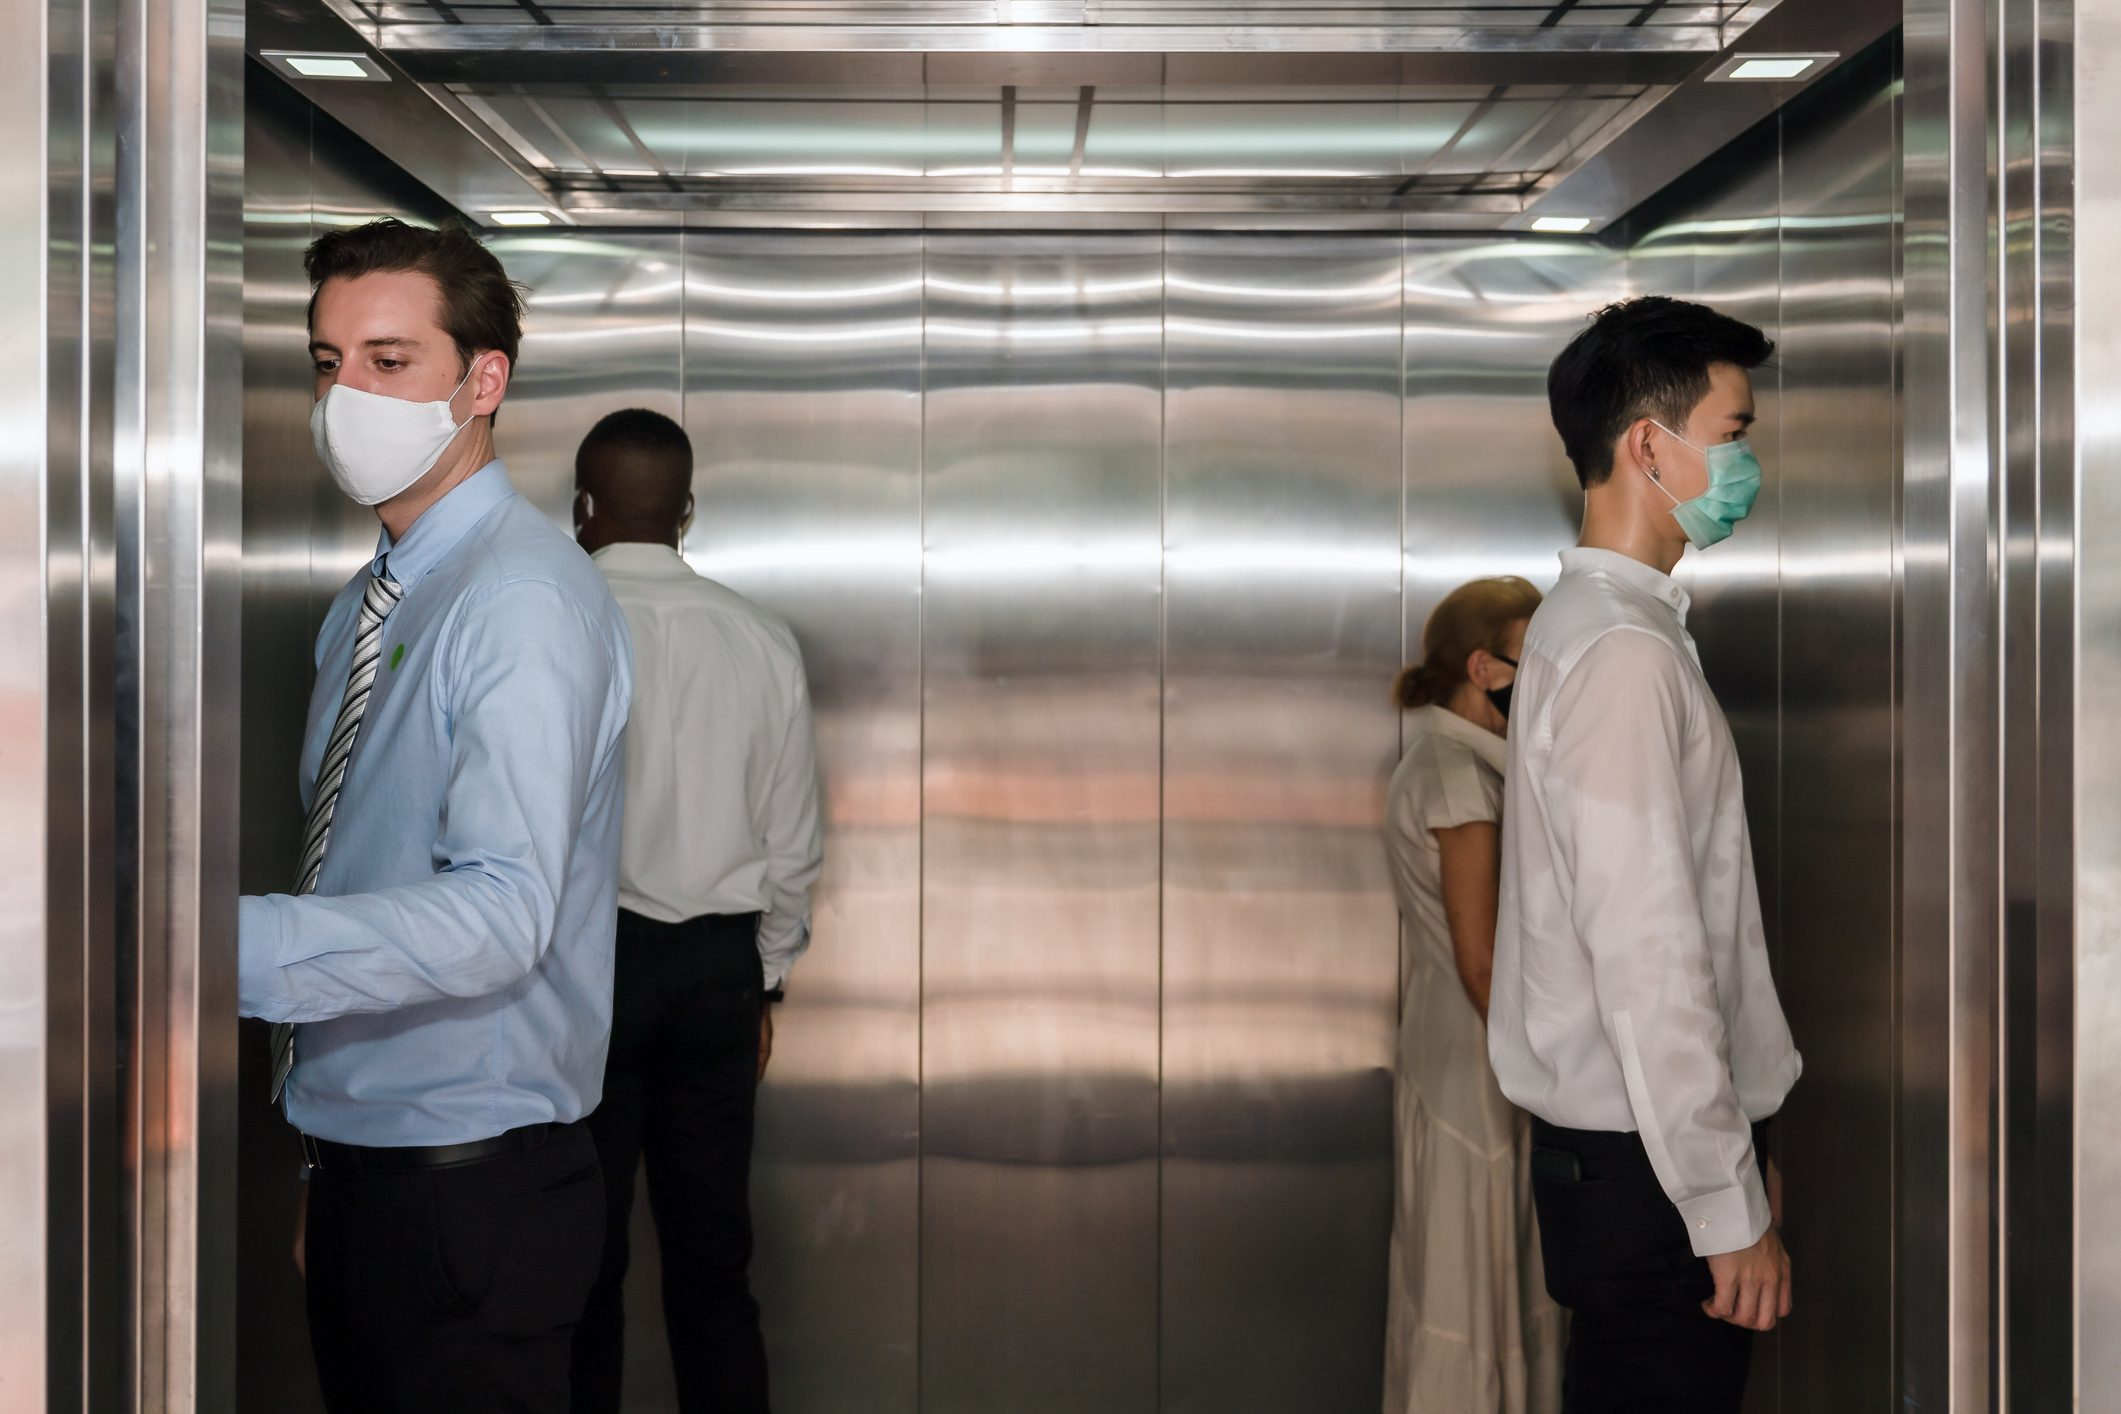 caucasian business man and other people standing apart from each in corner of elevator for social distancing to avoid coronavirus covid-19 spreading, selective focus